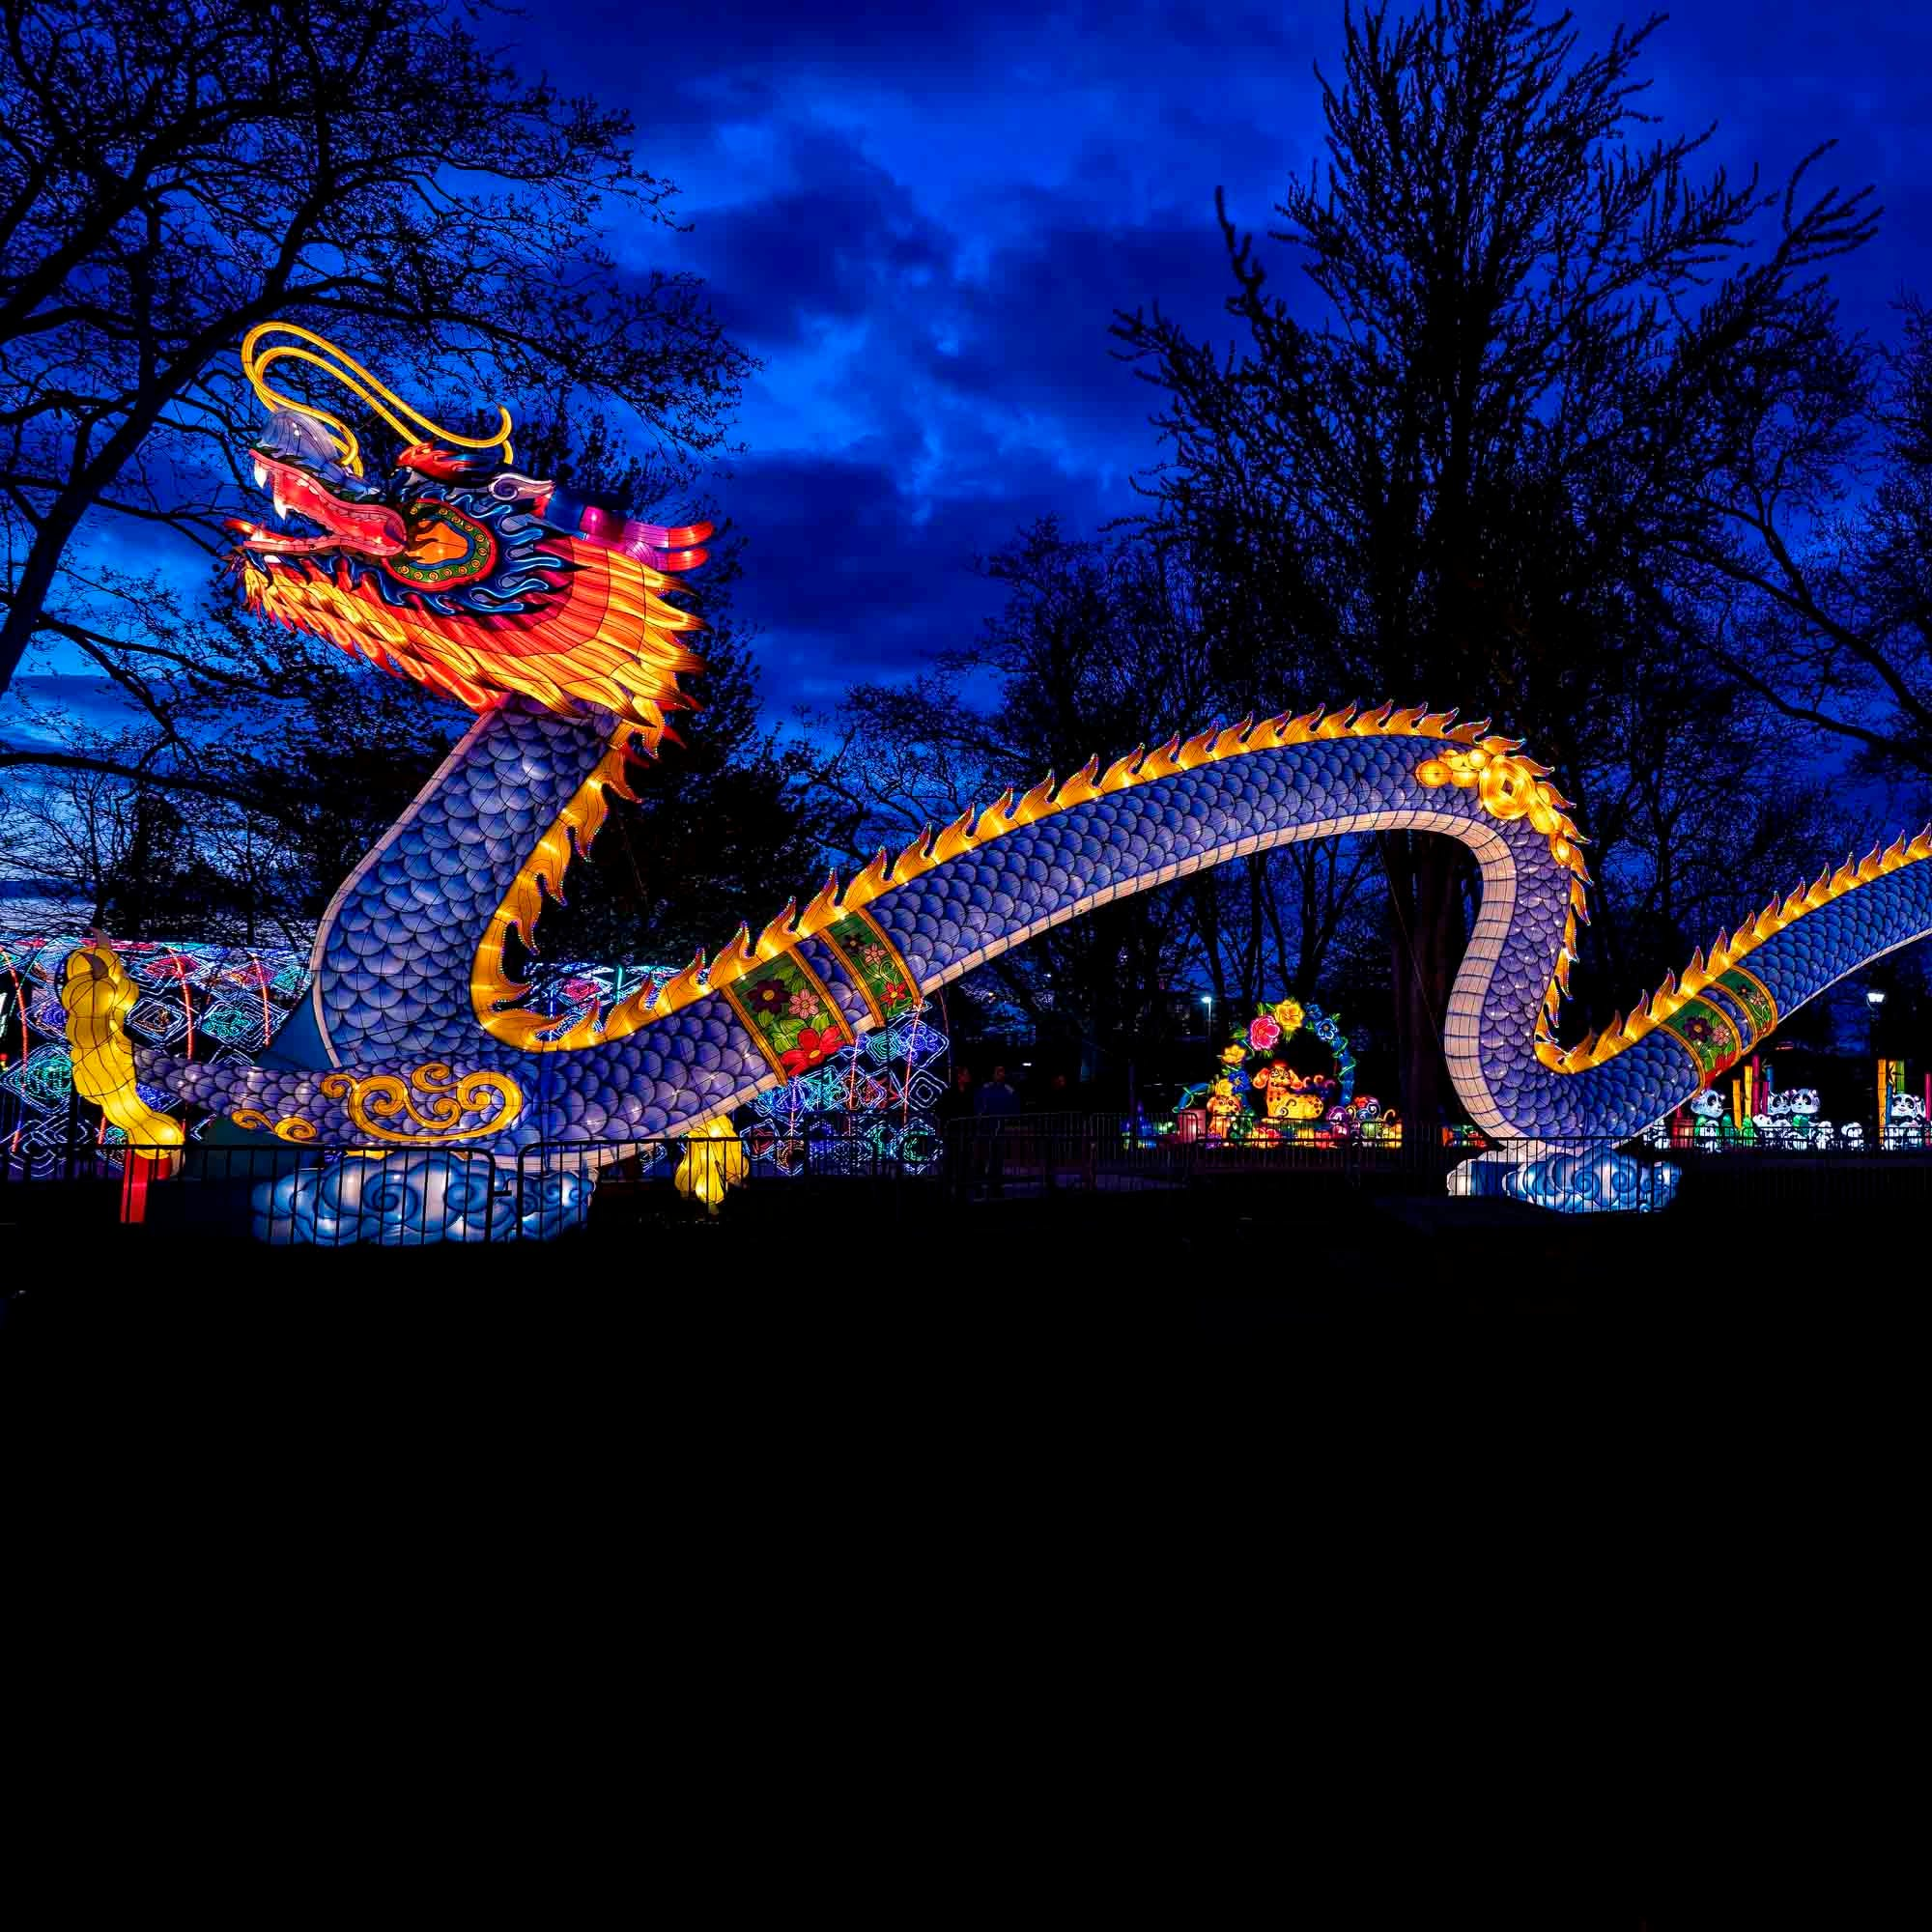 Chinese cultural festival Dragon Lights Albuquerque debuts in New Mexico Oct. 5